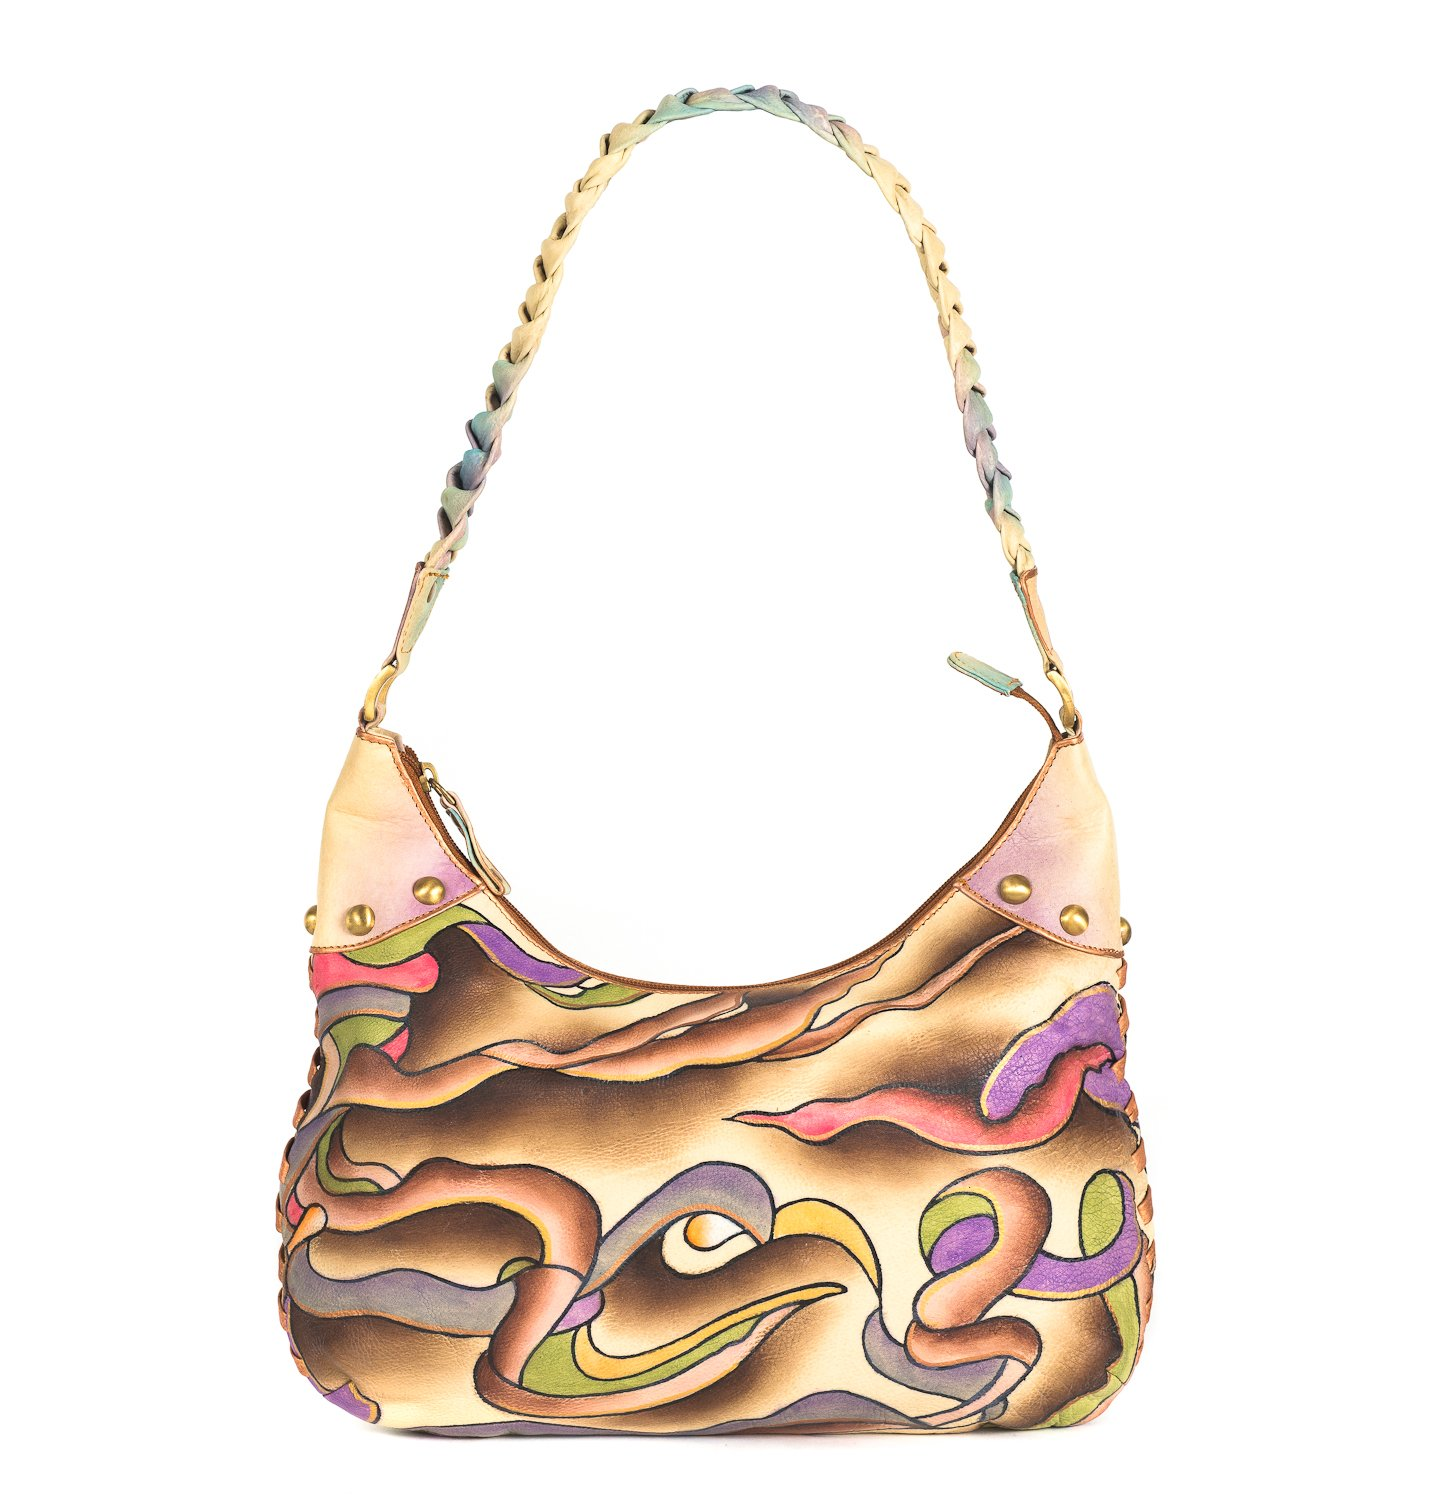 ZIMBELMANN ESTHER Genuine Nappa Leather Hand-painted Hobo Shoulder Bag Purse by Zimbelmann